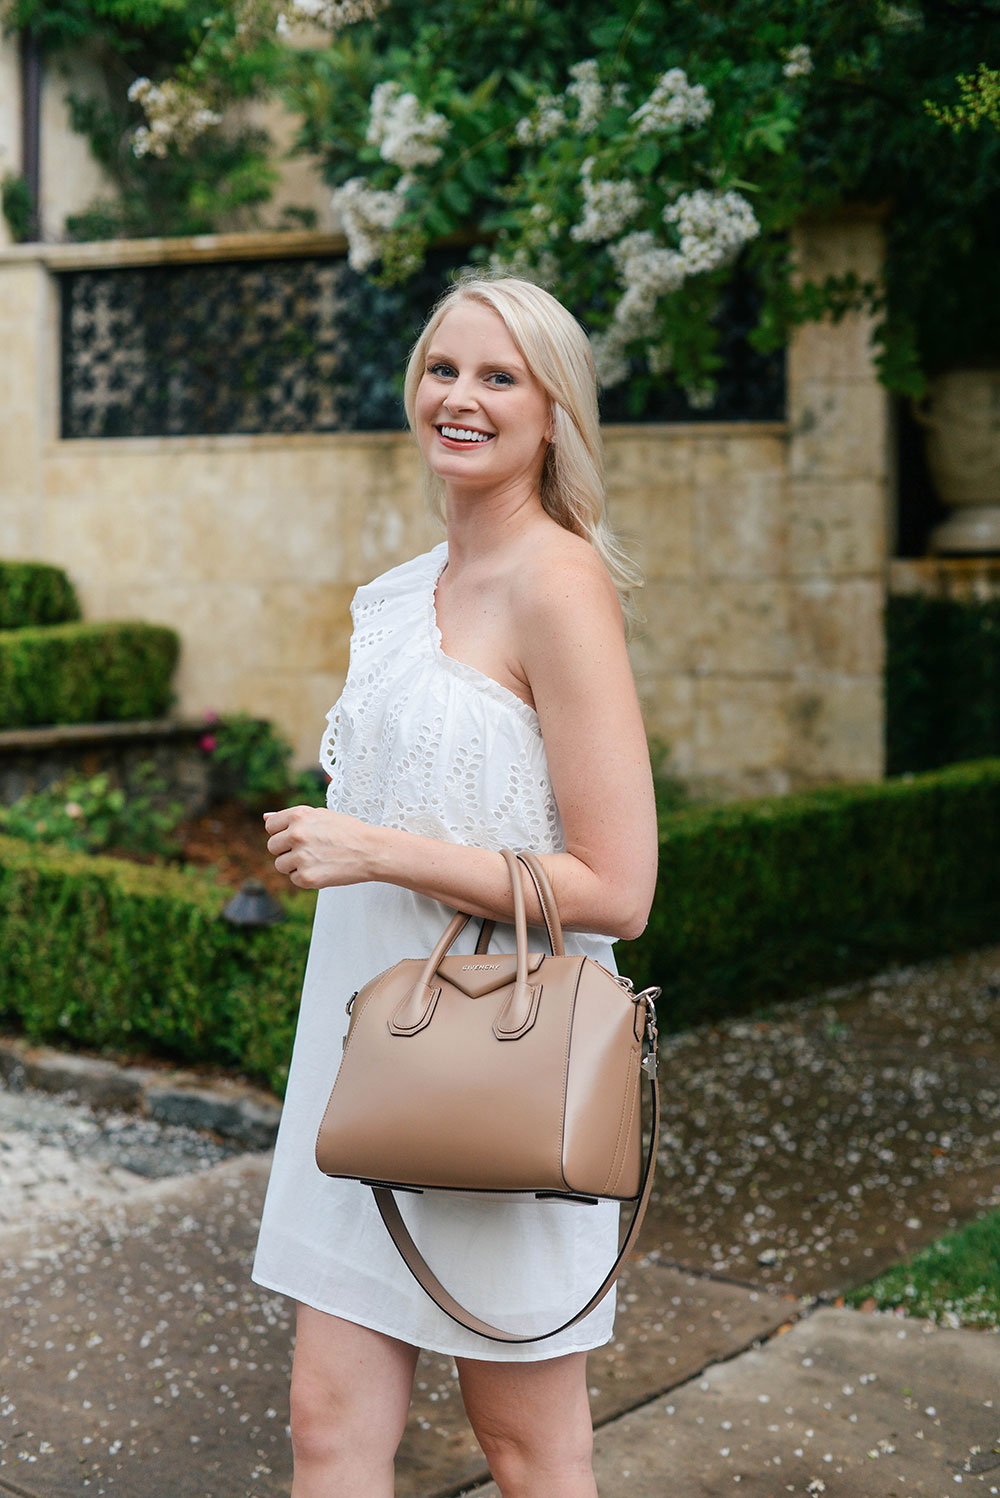 One-Shoulder Eyelet Dress | The Style Scribe